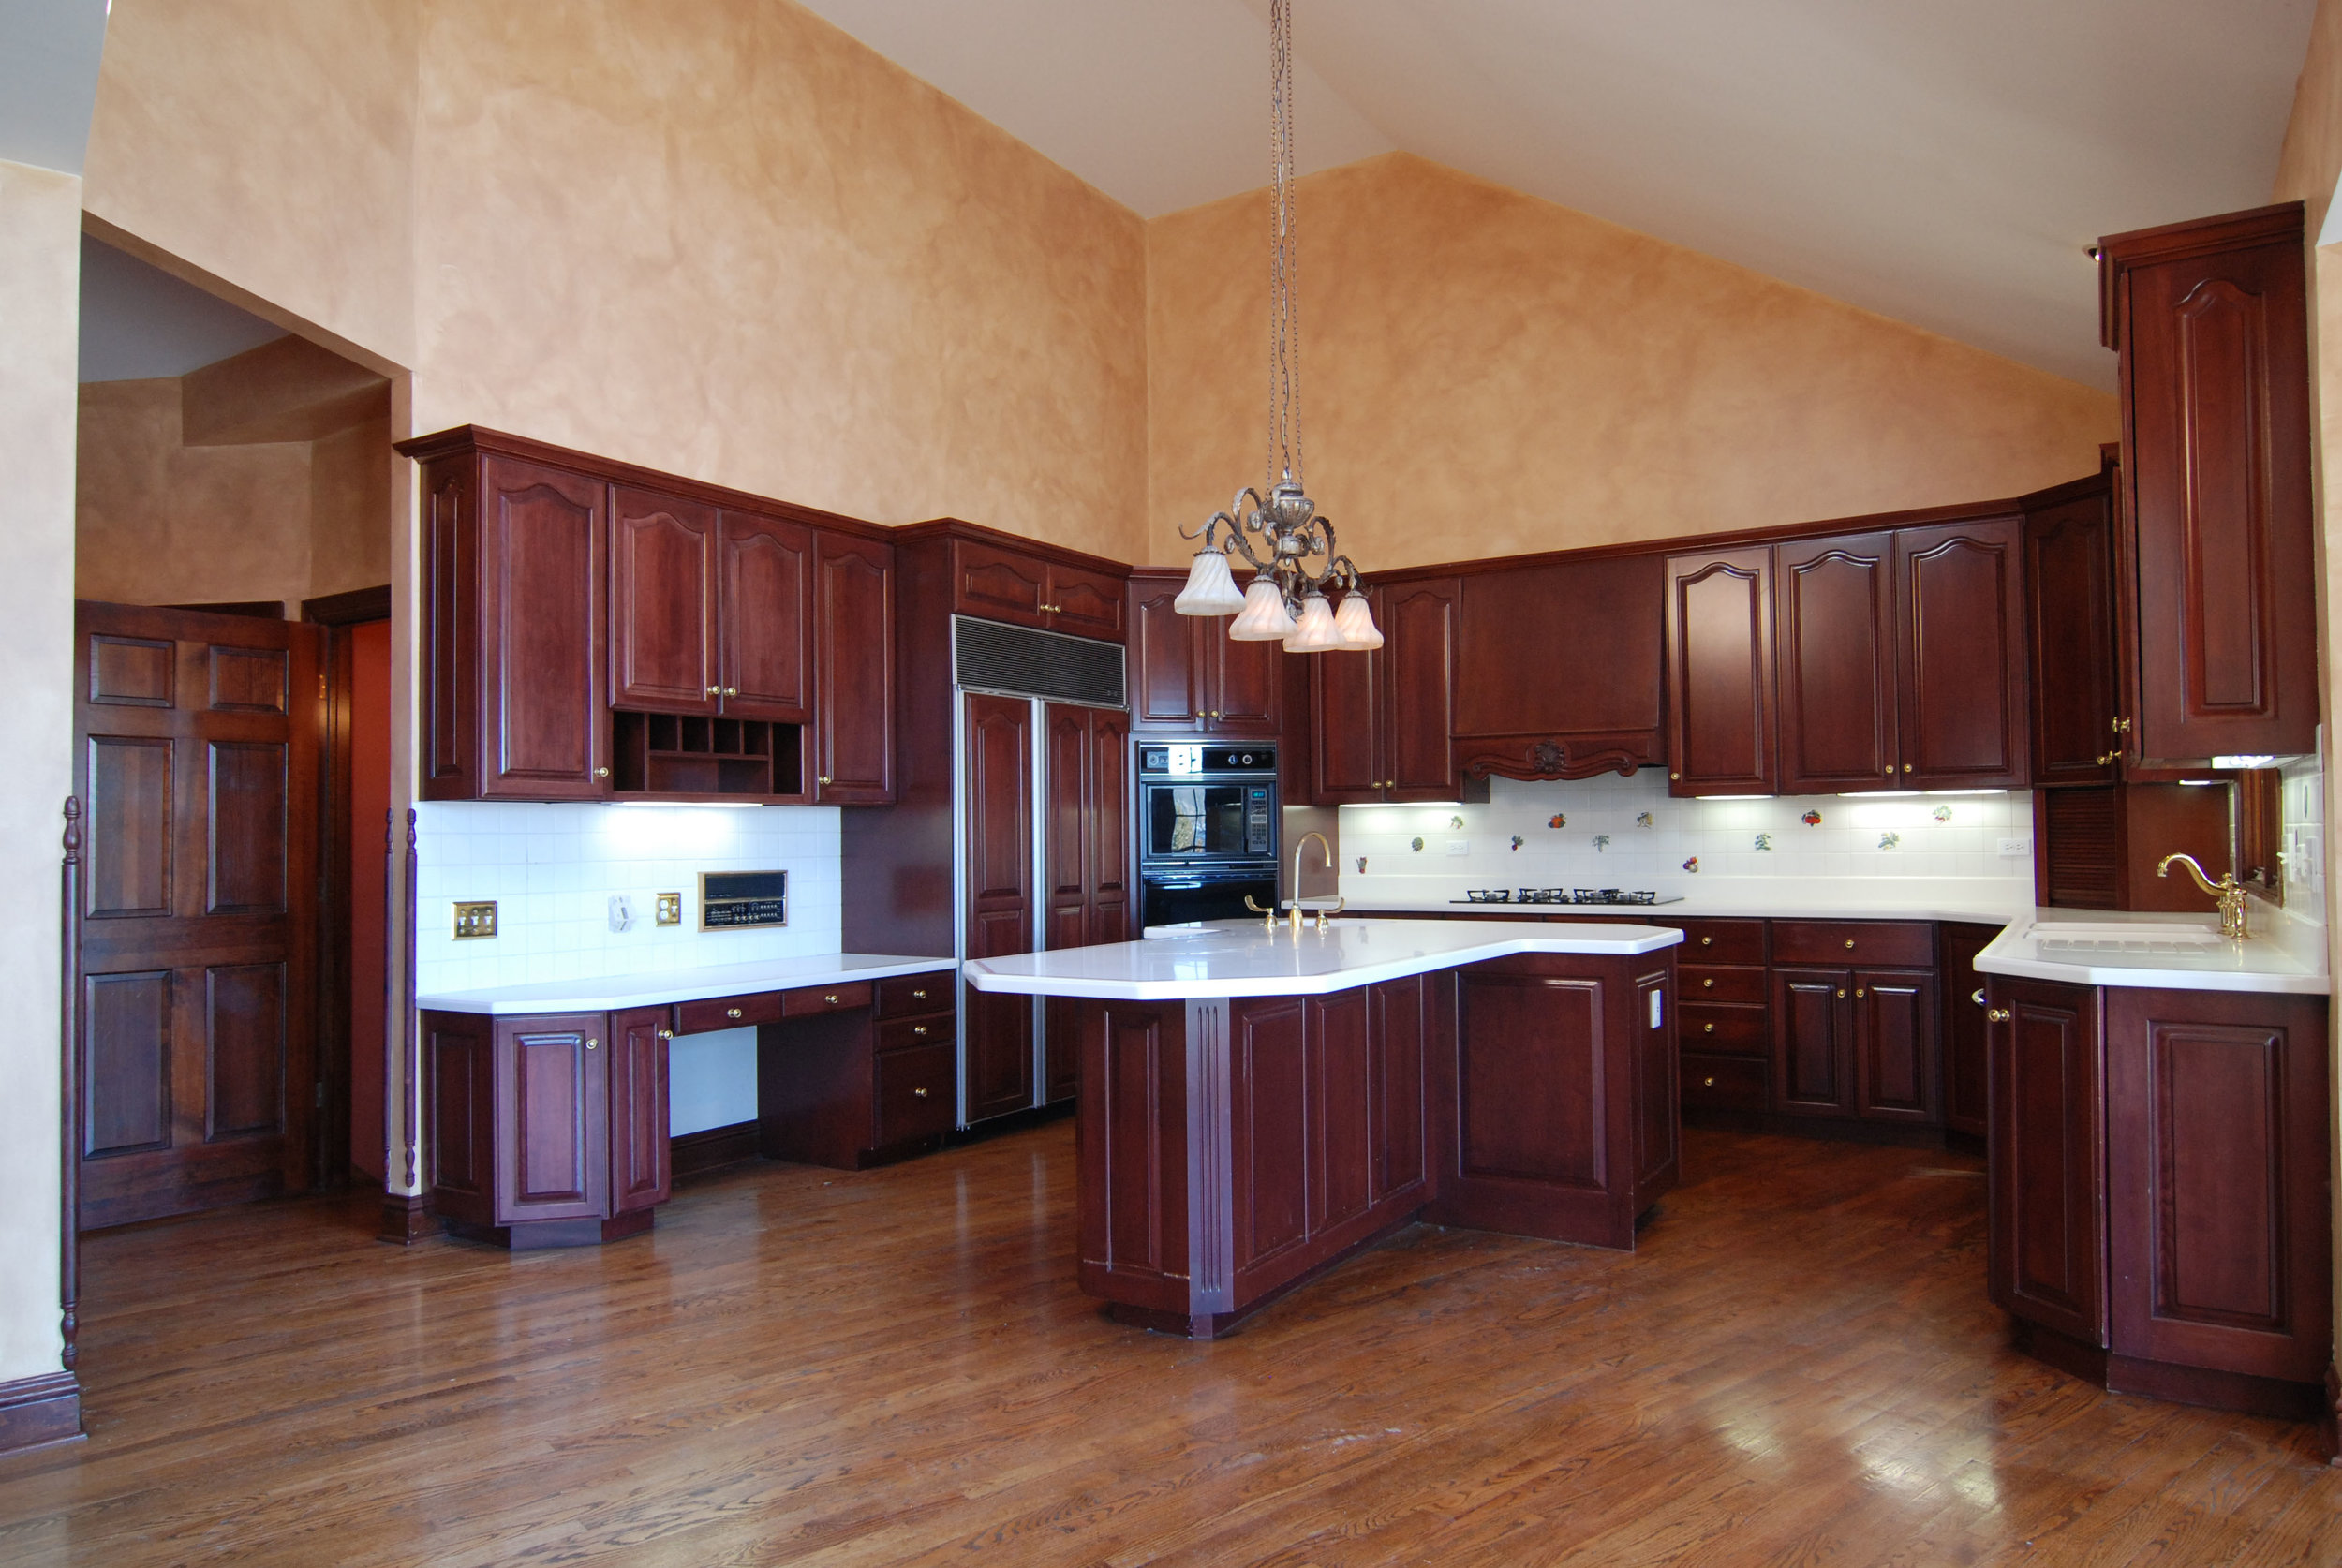 Naperville Illinois Outdated Kitchen with Cherry Cabinetry & White Corian Counters. Helps I am Stuck in the 90's!